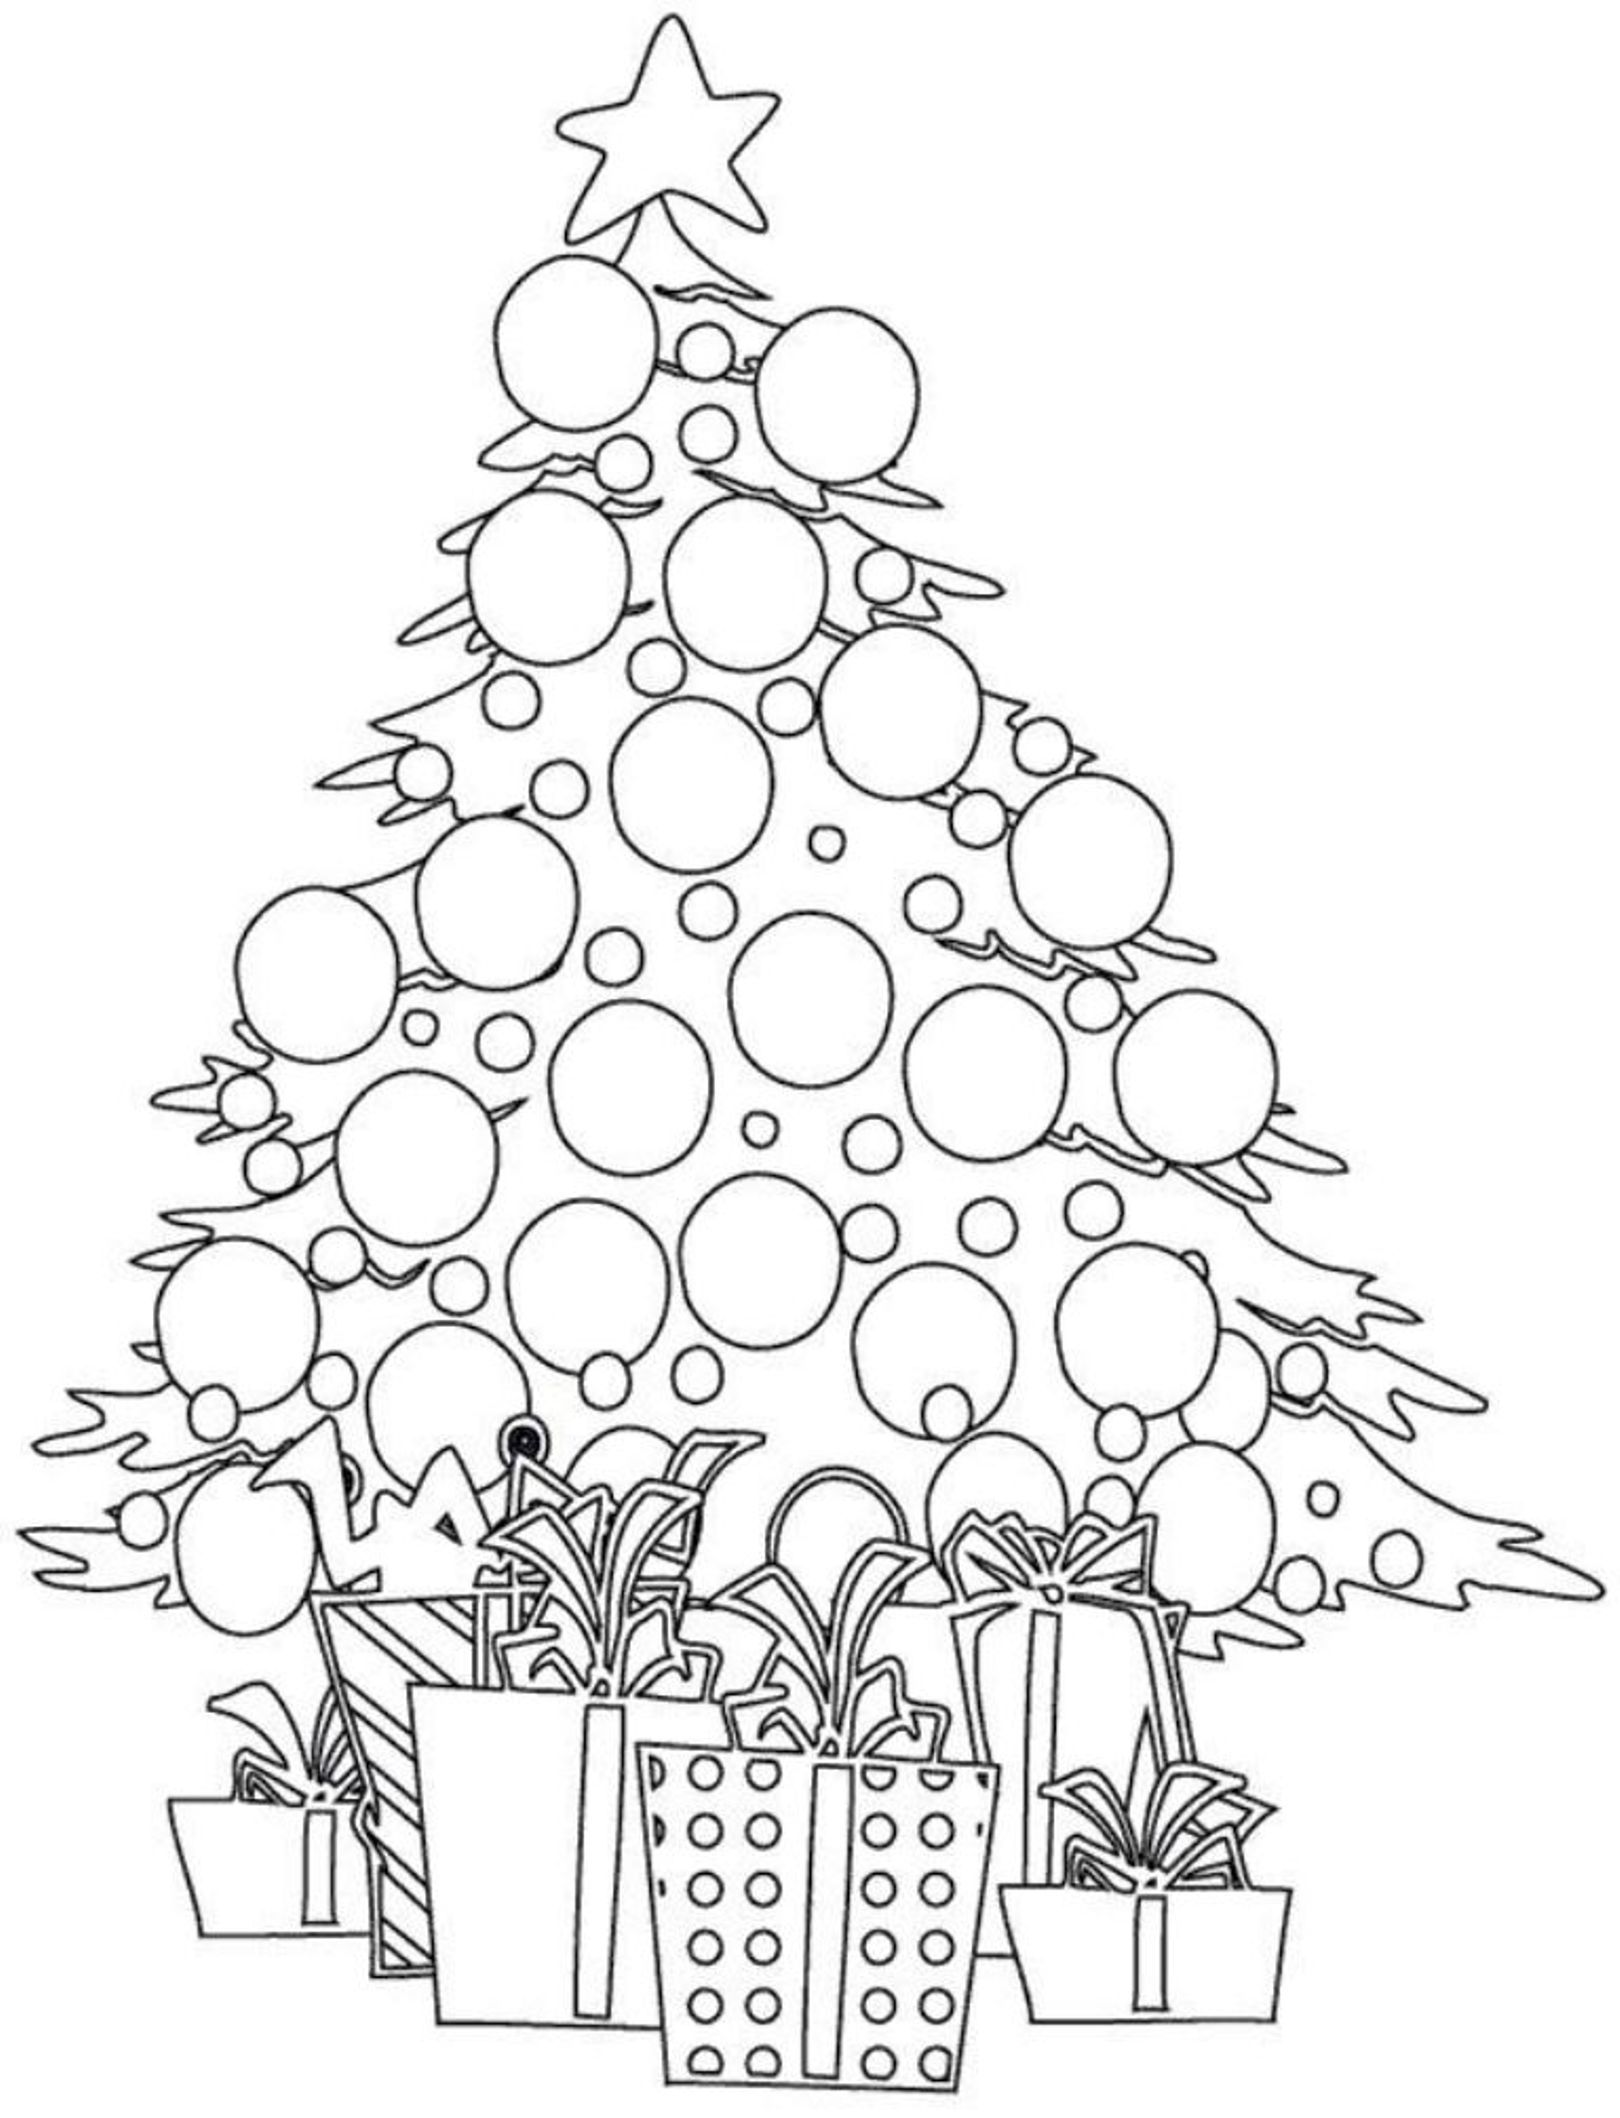 Christmas Coloring Pages Trees With Tree And Presents For Kids